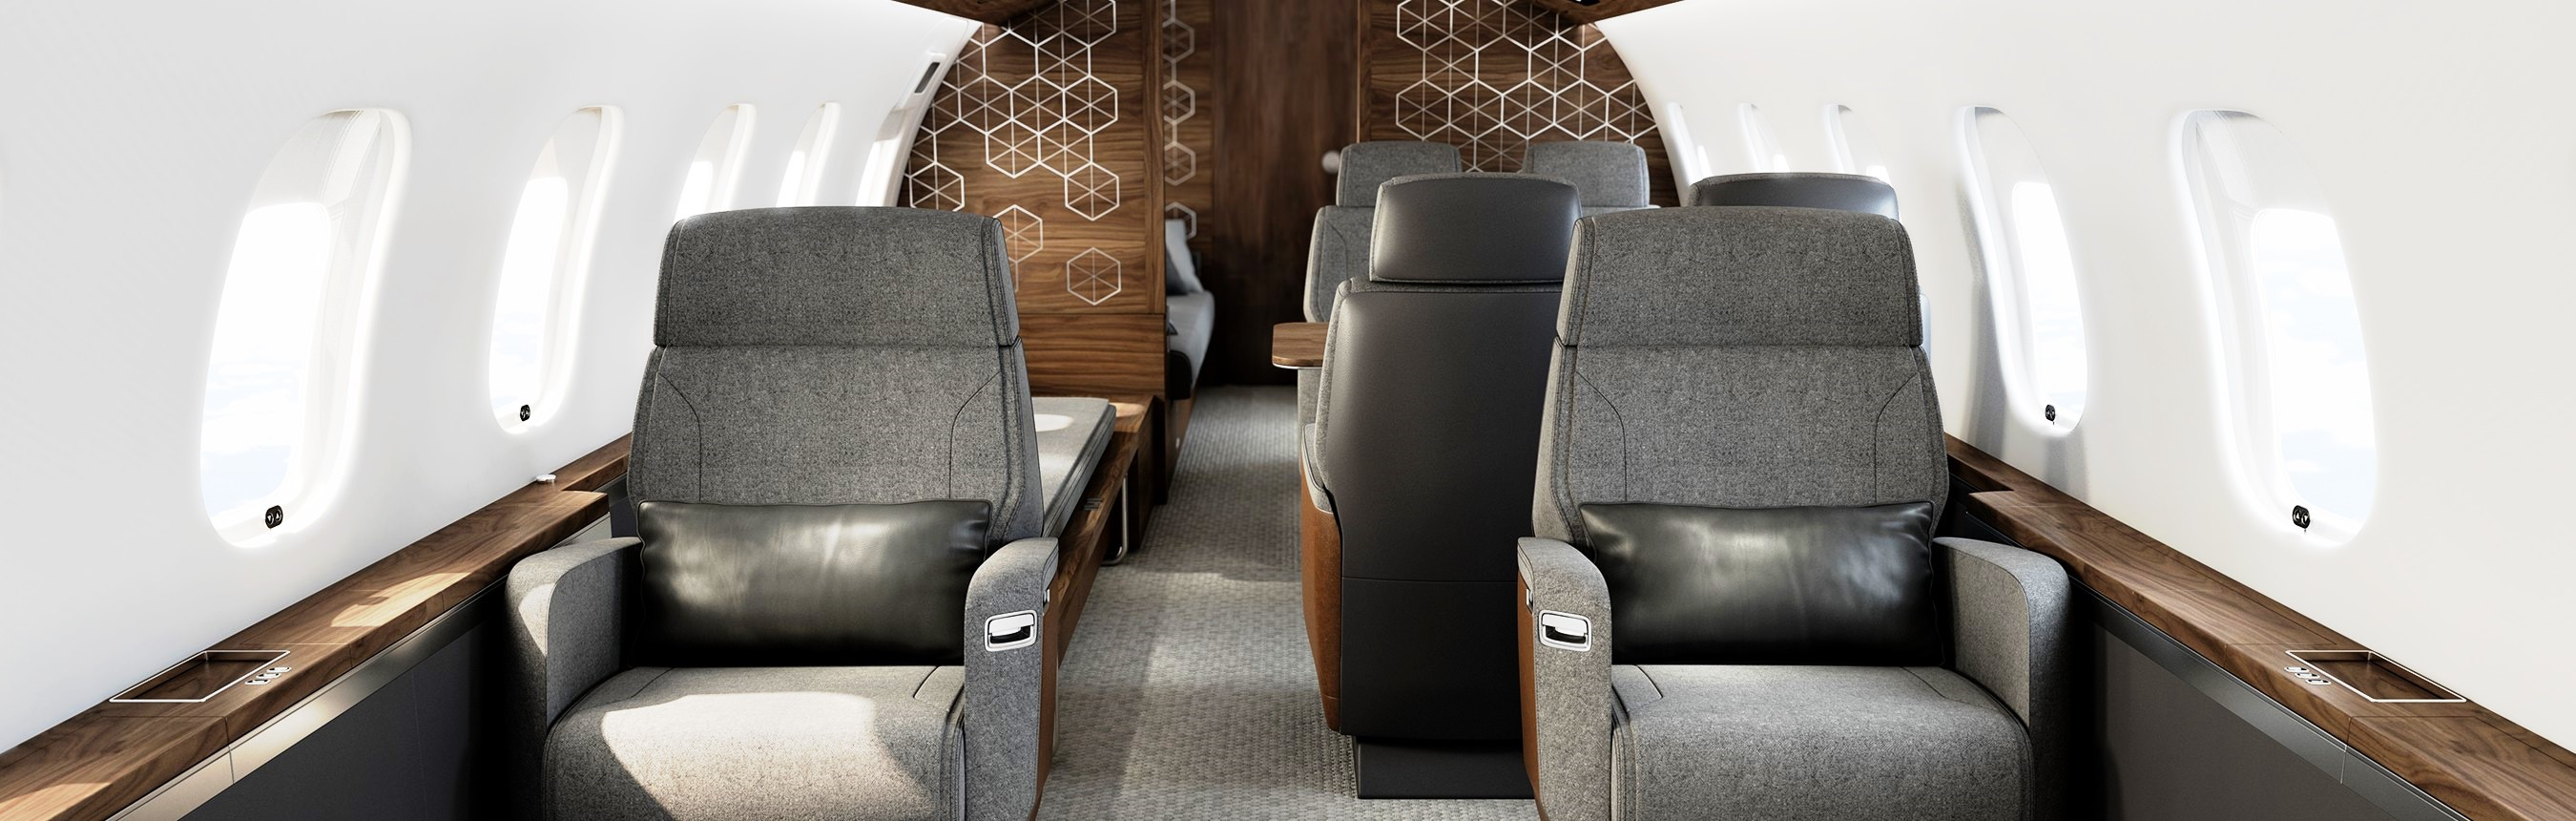 bombardier-global-6500-business-jet-interior